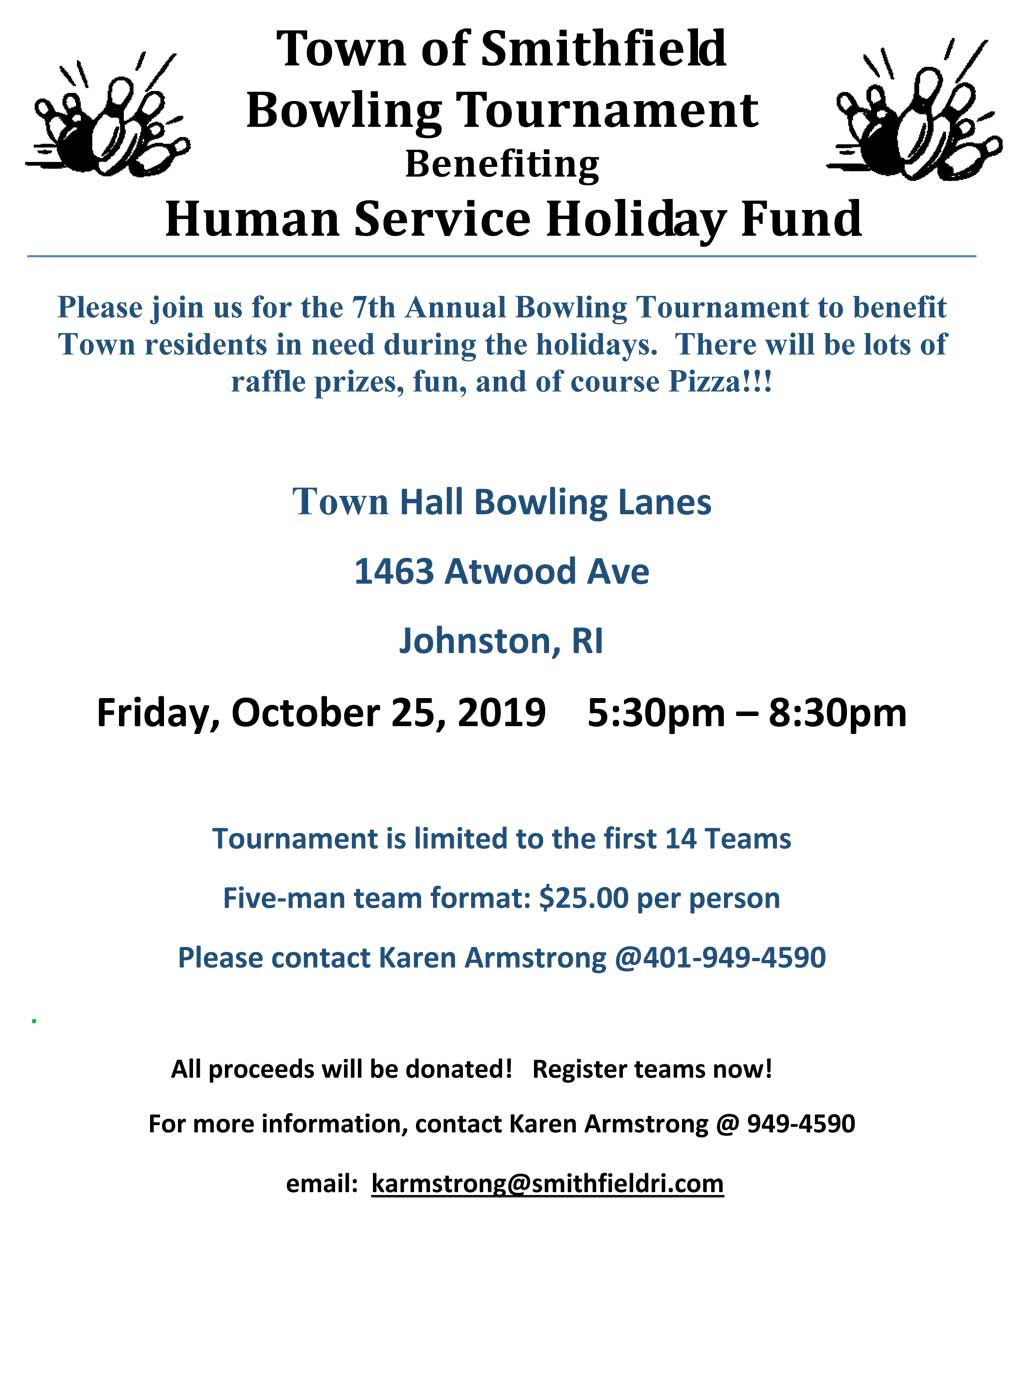 Town of Smithfield Bowling Tournament - Benefiting the Human Services Holiday Fund - Friday, October 25th